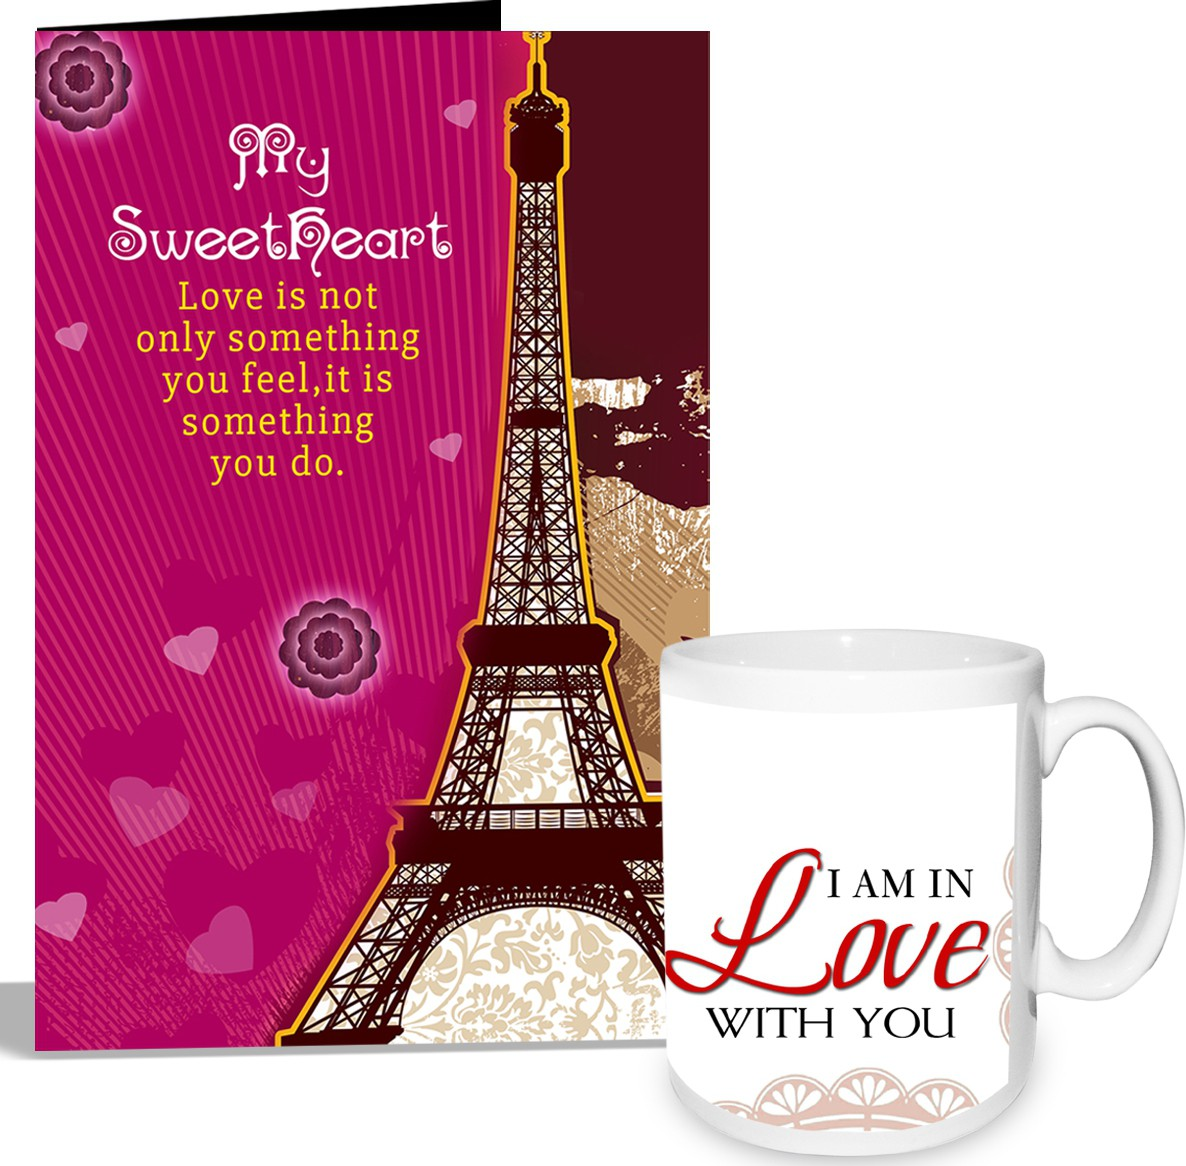 Deals | Vday Special Greeting Card Combos